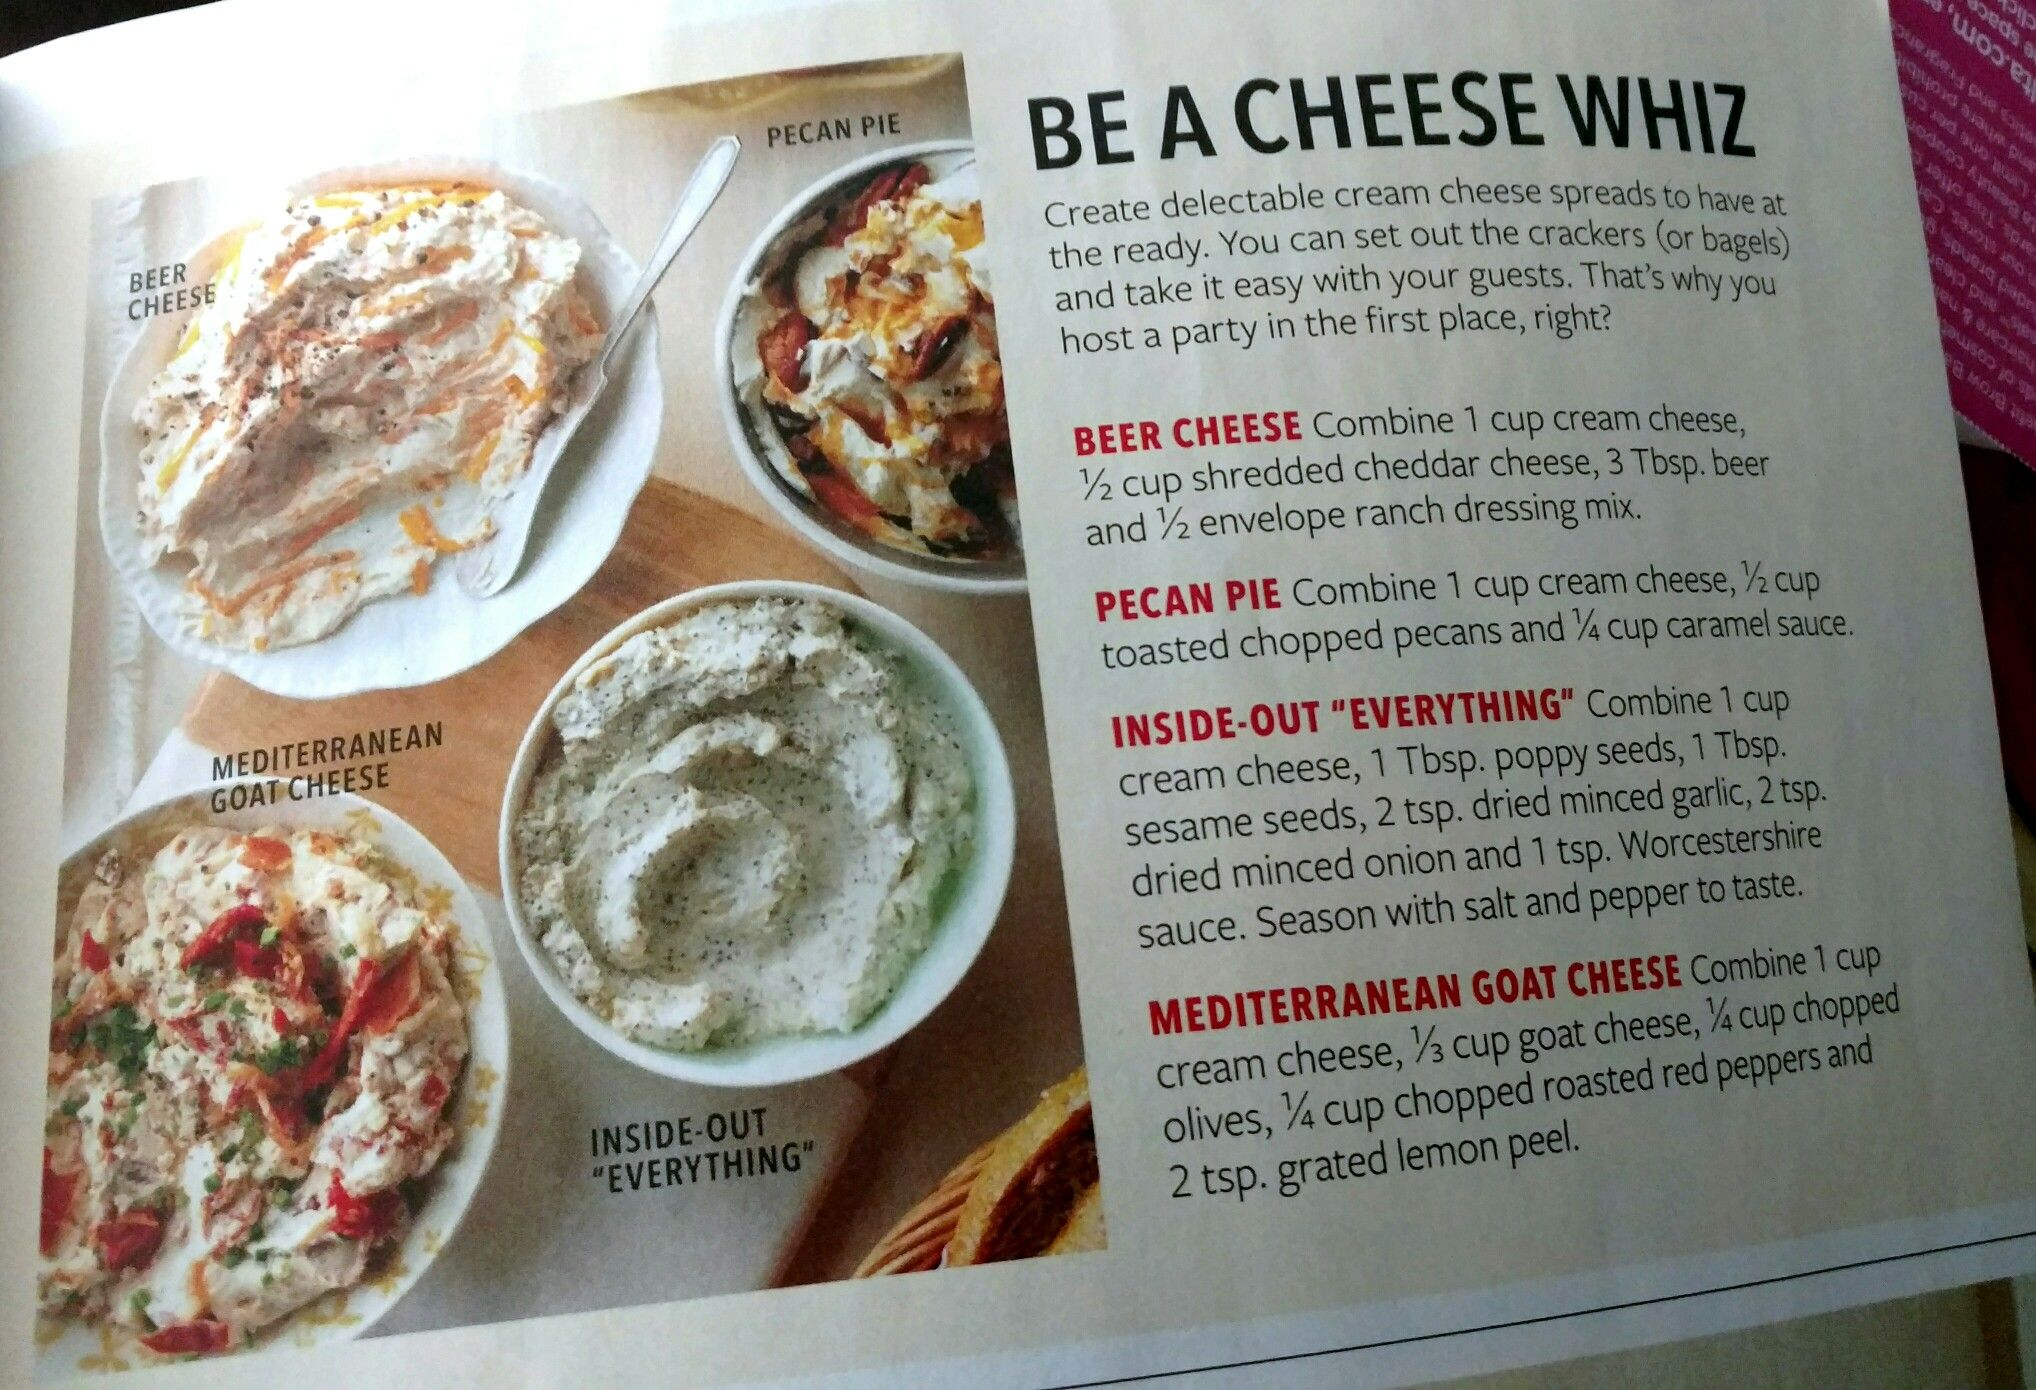 Be a cheese whiz. Taste of Home